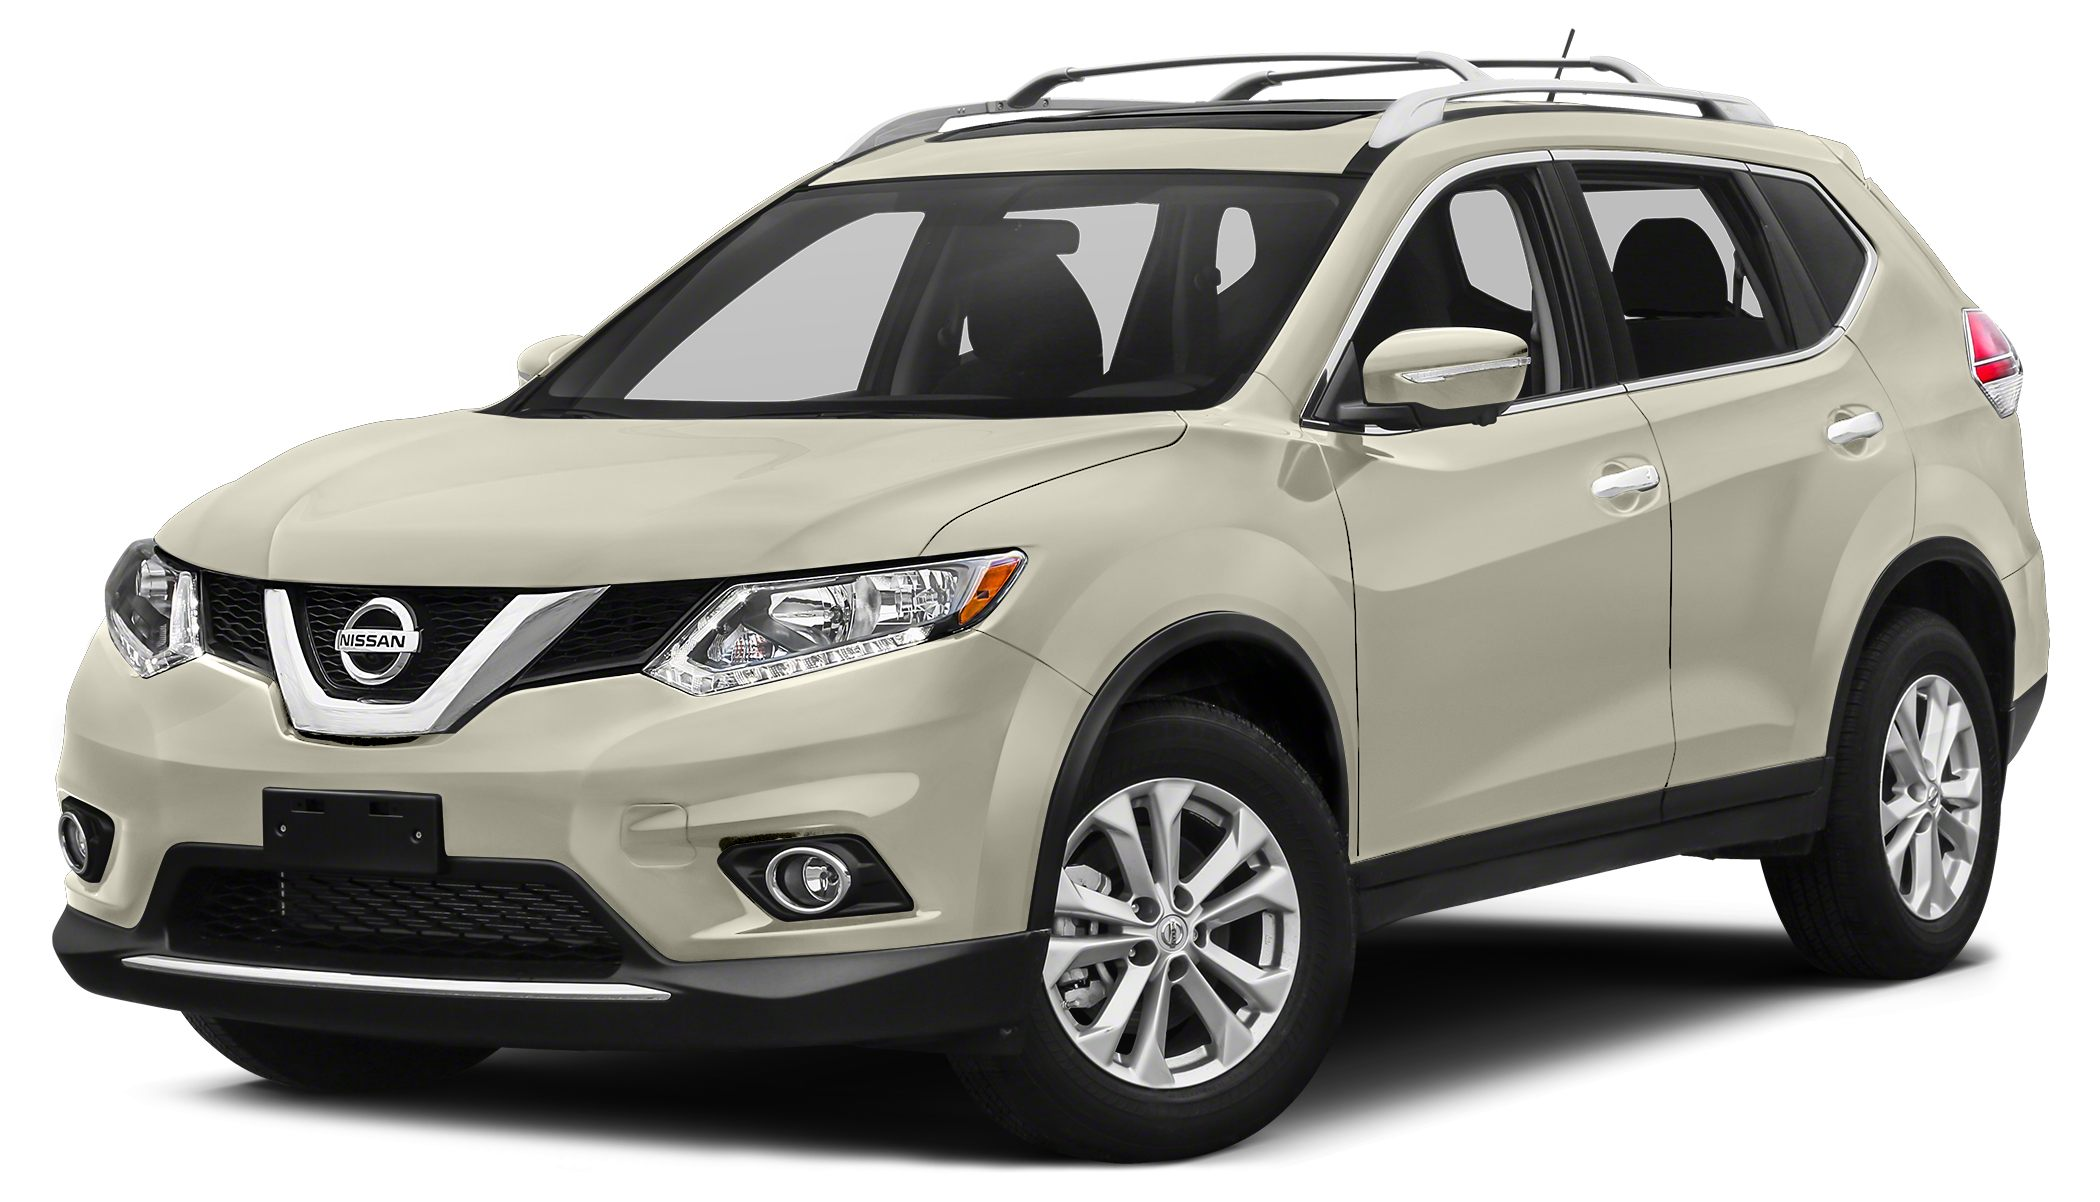 2015 Nissan Rogue SL AWD Nav A great deal in Bartlesville How alluring is this beautiful one-o